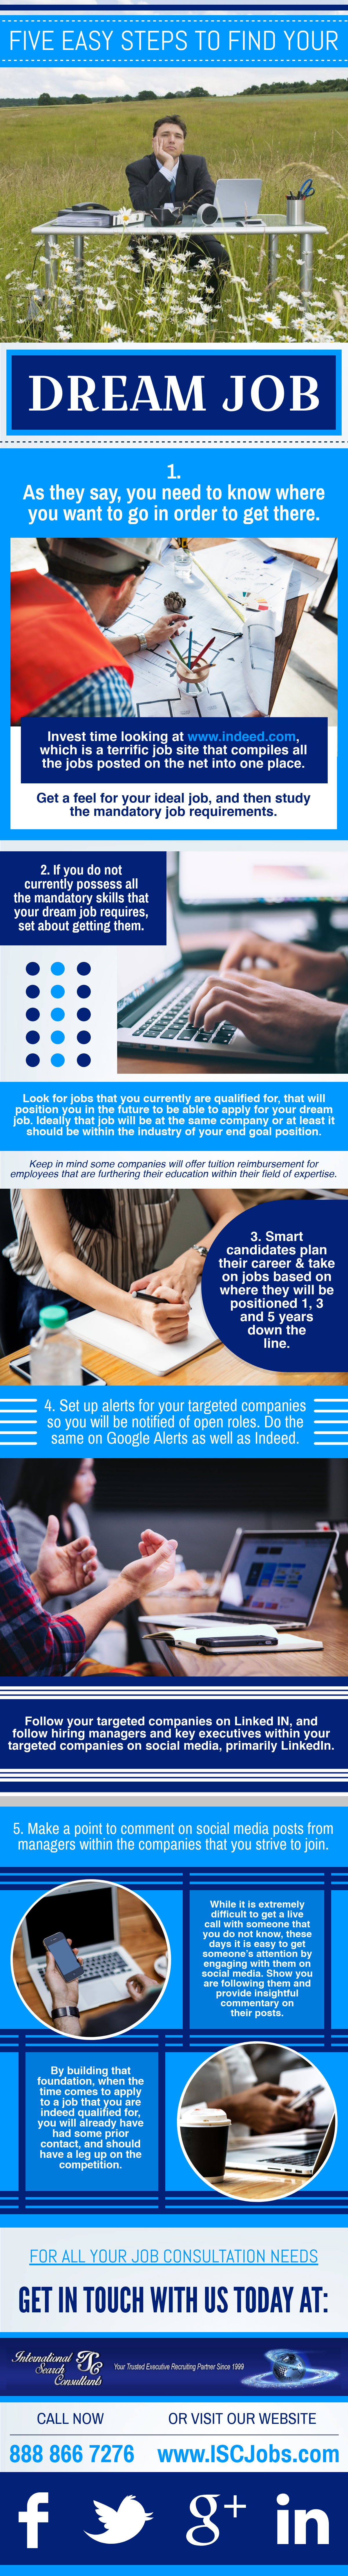 Infographic; 5 Easy Steps to Find Your Dream Job!